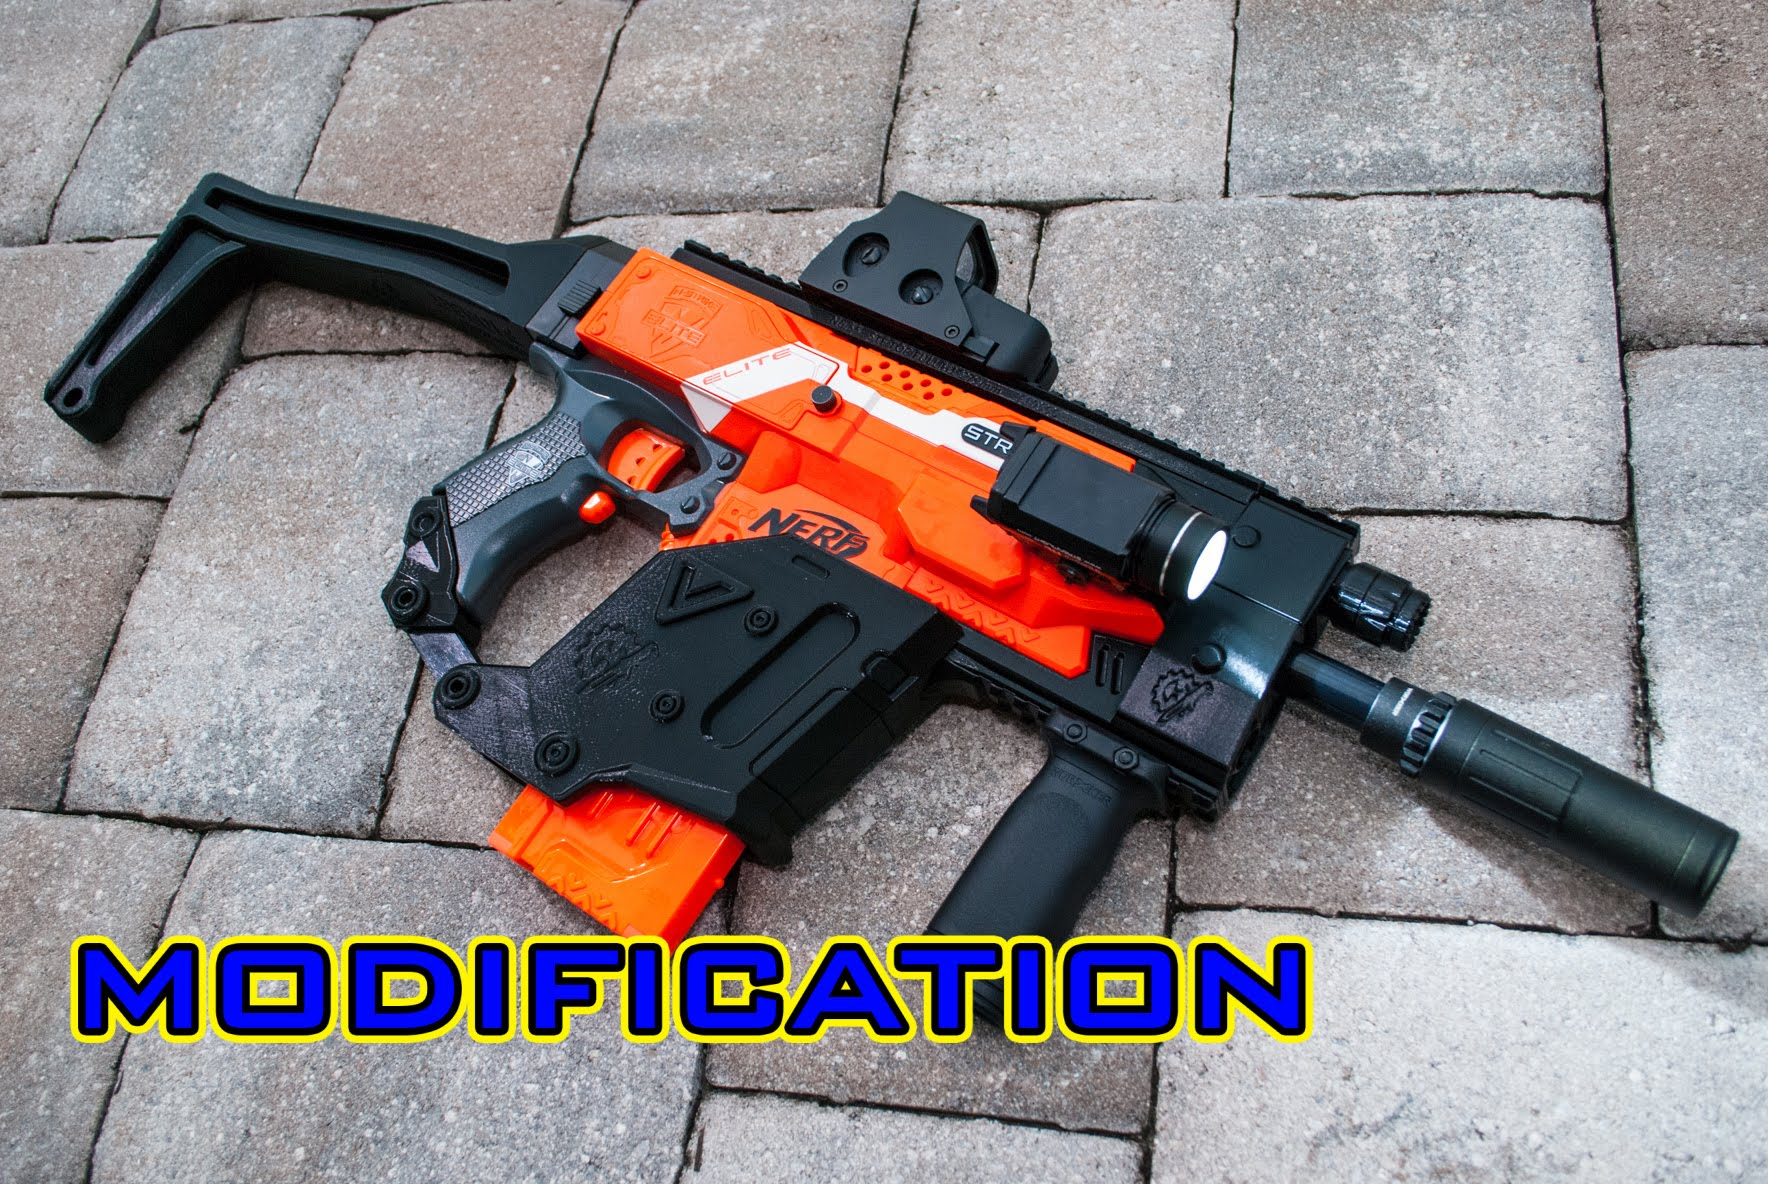 1768x1184 Mod] Nerf Stryfe Kriss Vector 3d Printed Kit!